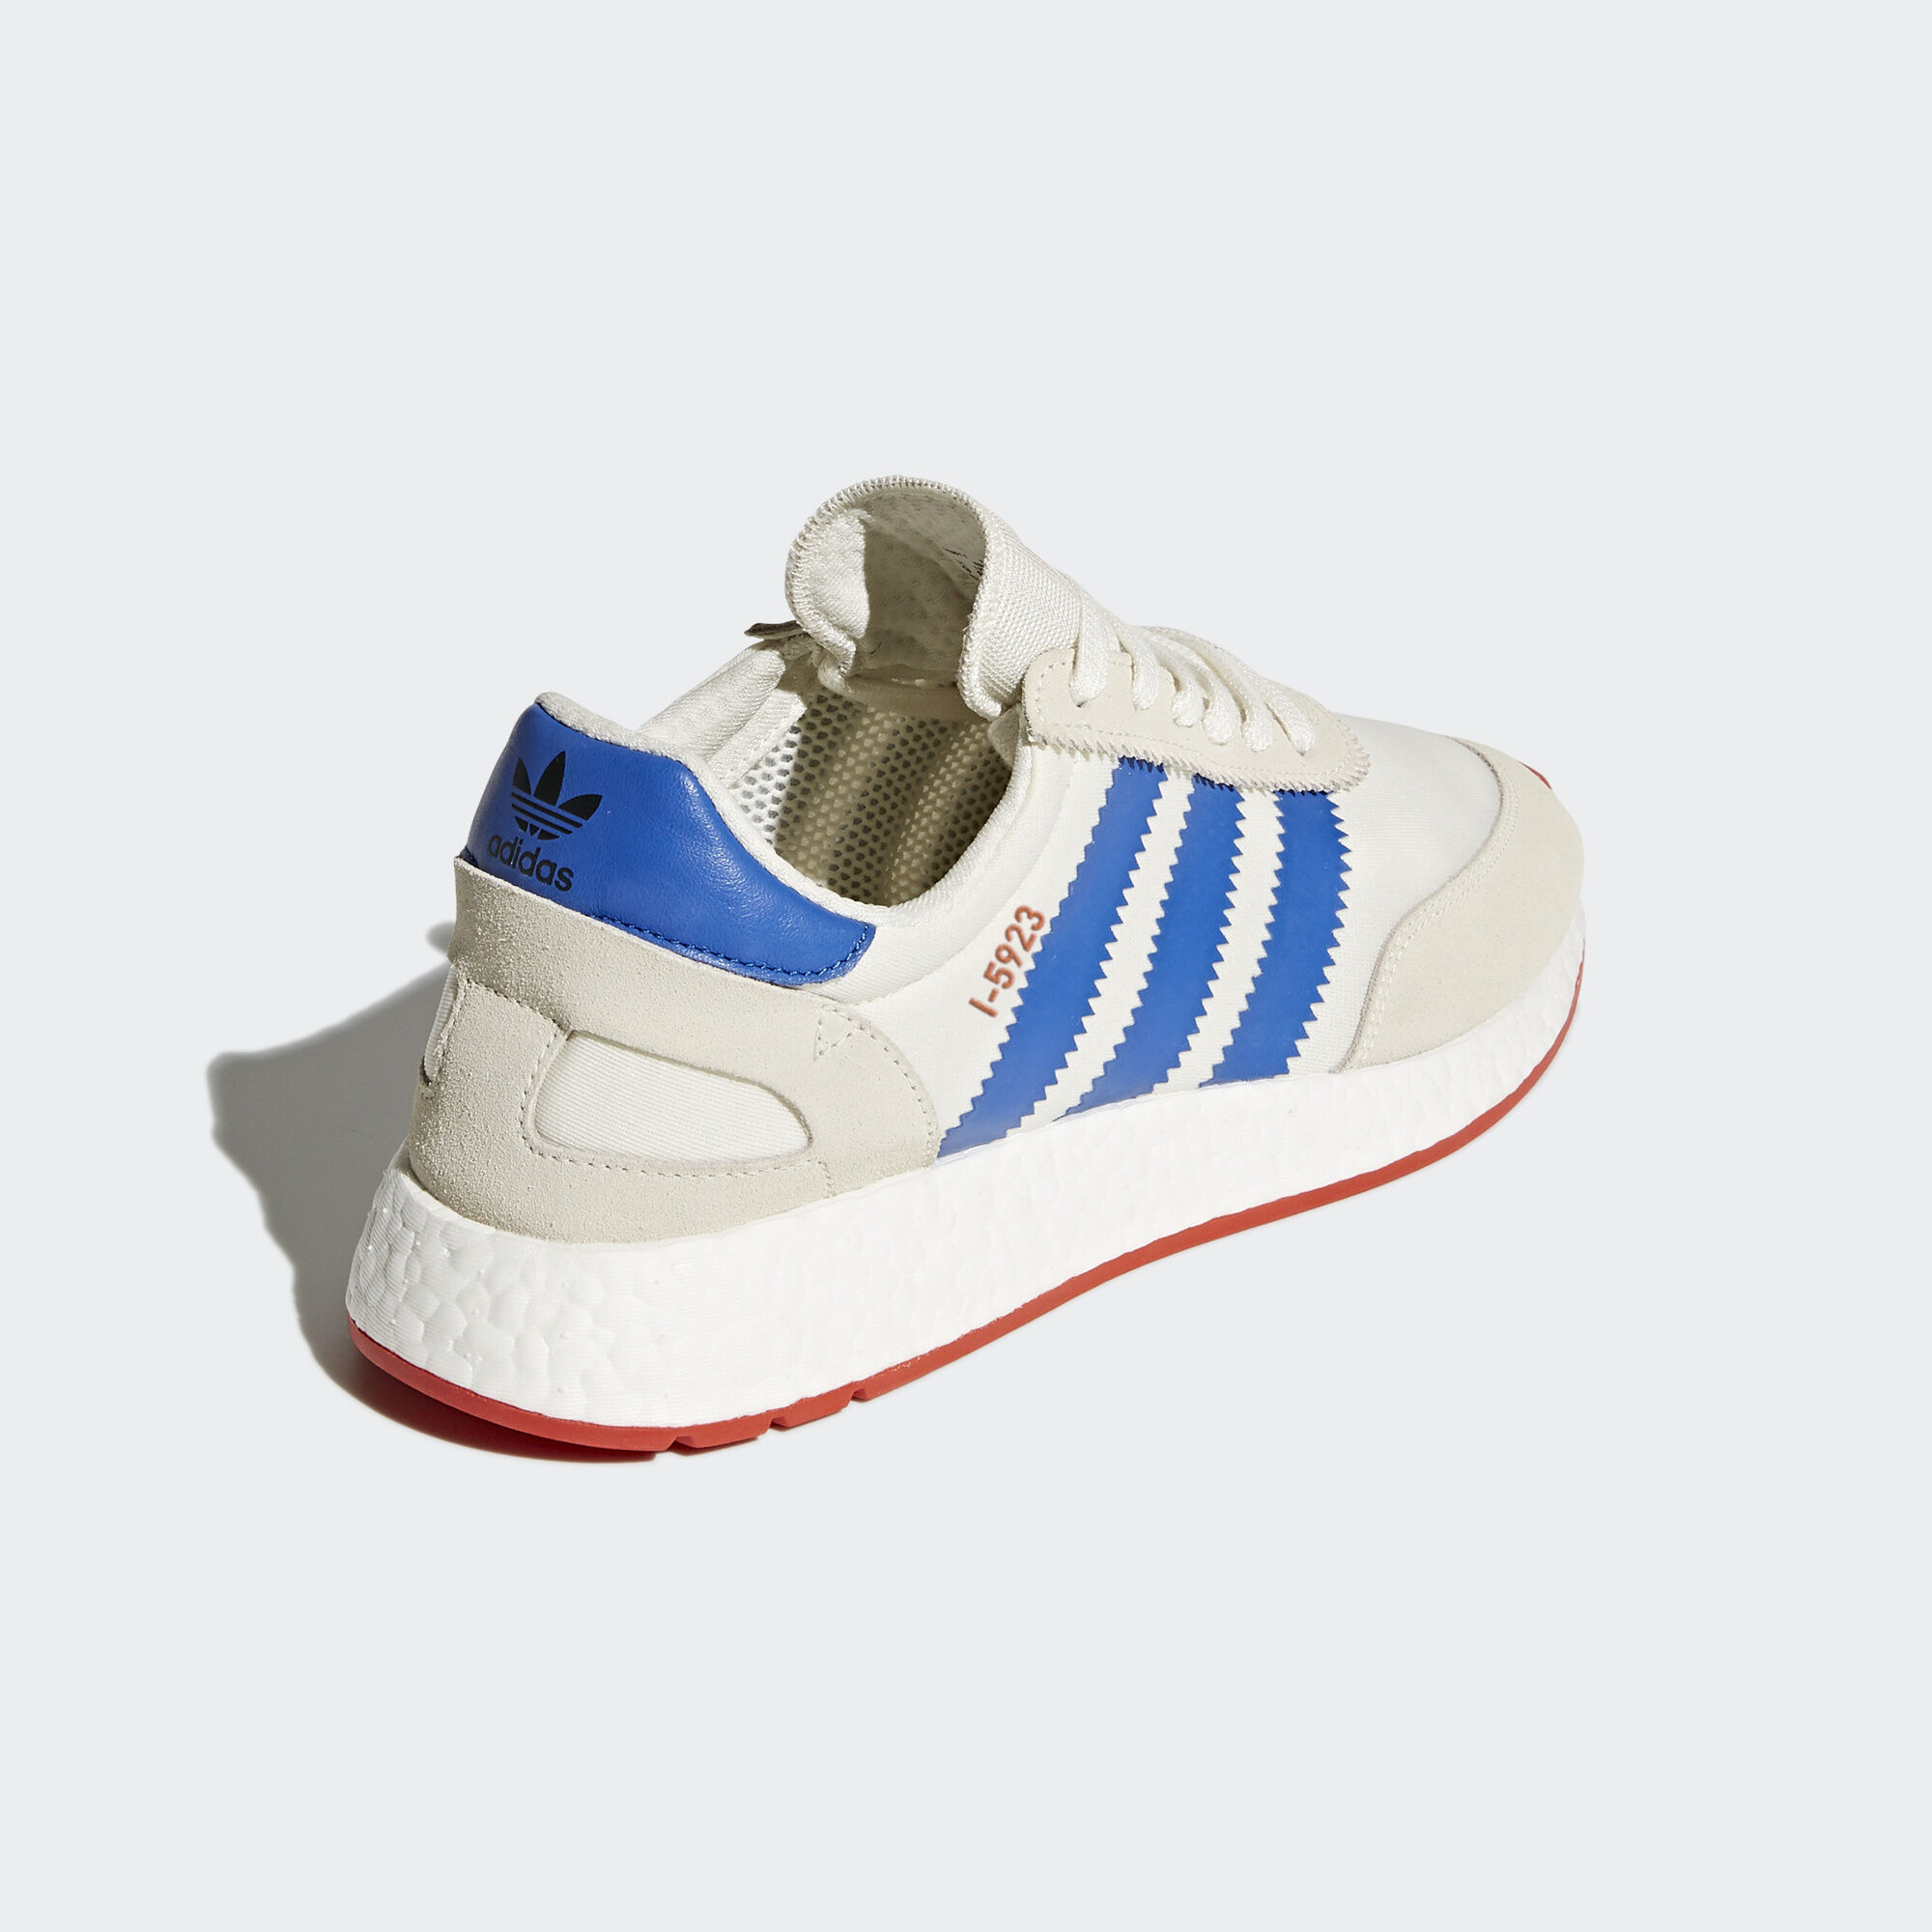 adidas: Iniki Runner 'Pride of the 70s' CW: off white/blue/core red. SKU:  BB2093 Release: - Retail: -